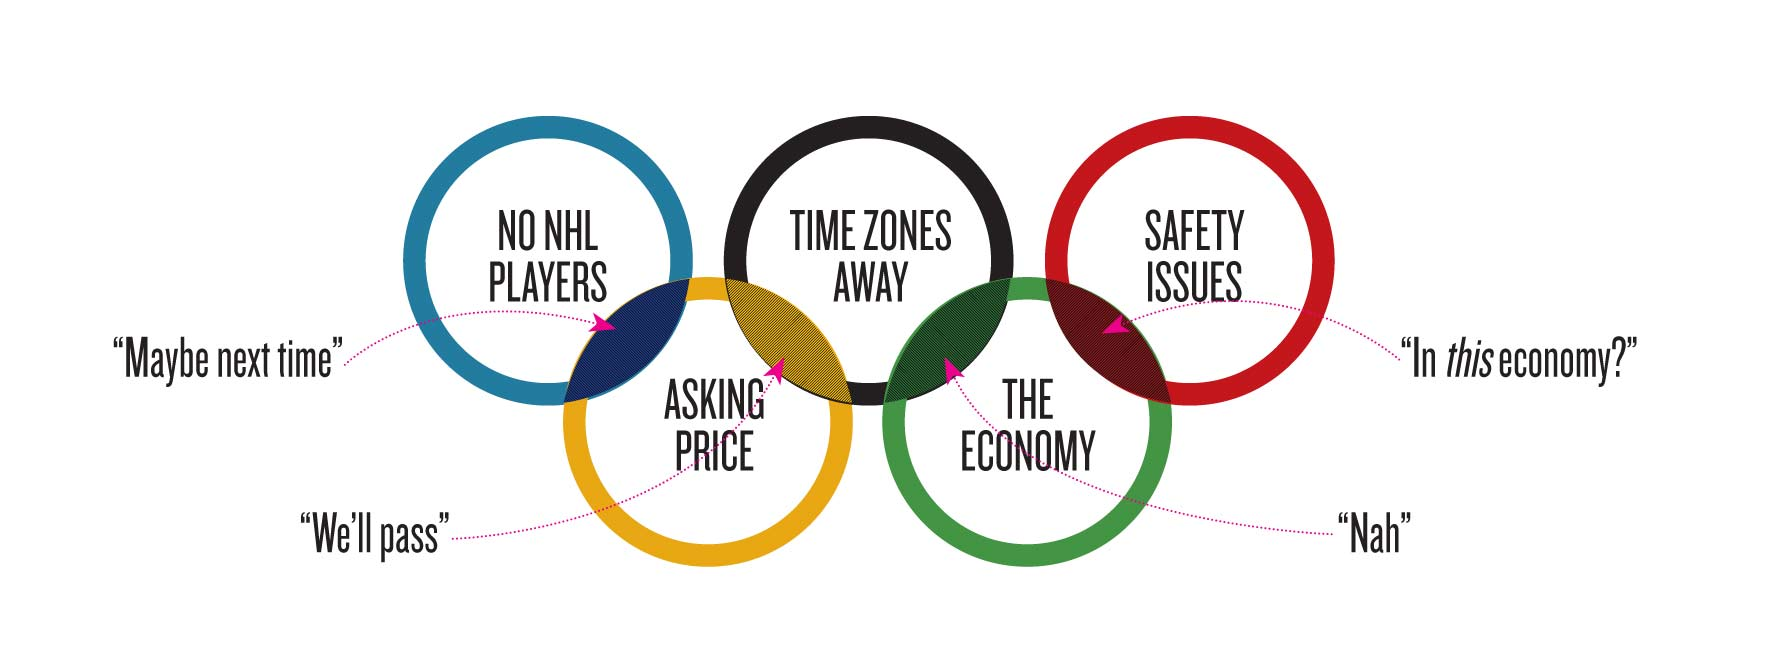 See the latest 2014 Winter Olympics Schedule Models and Reviews on ...